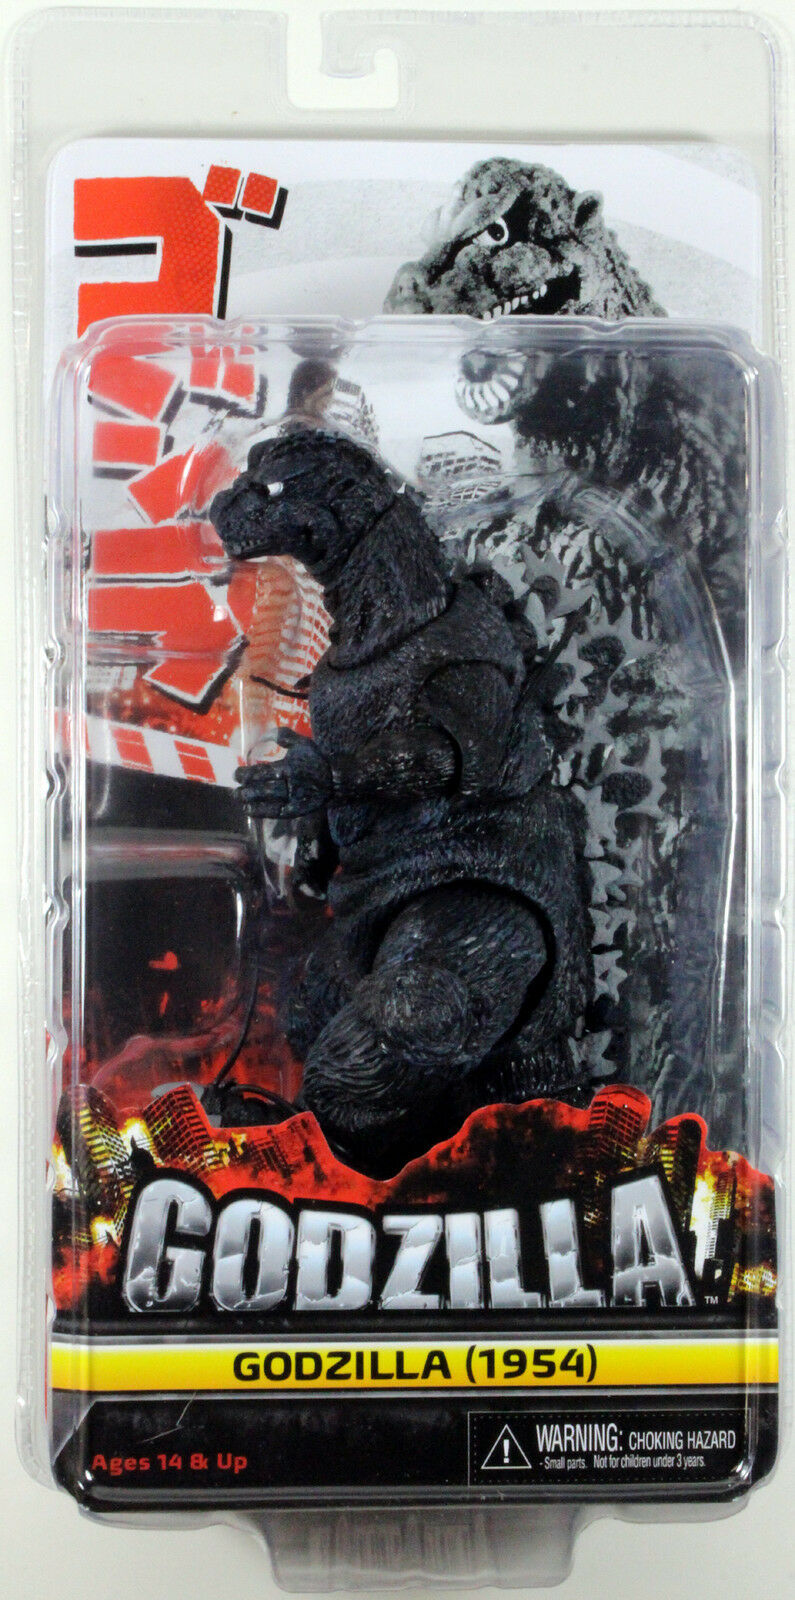 GODZILLA (1954 Movie Version) azione cifra  - NECA  caldo